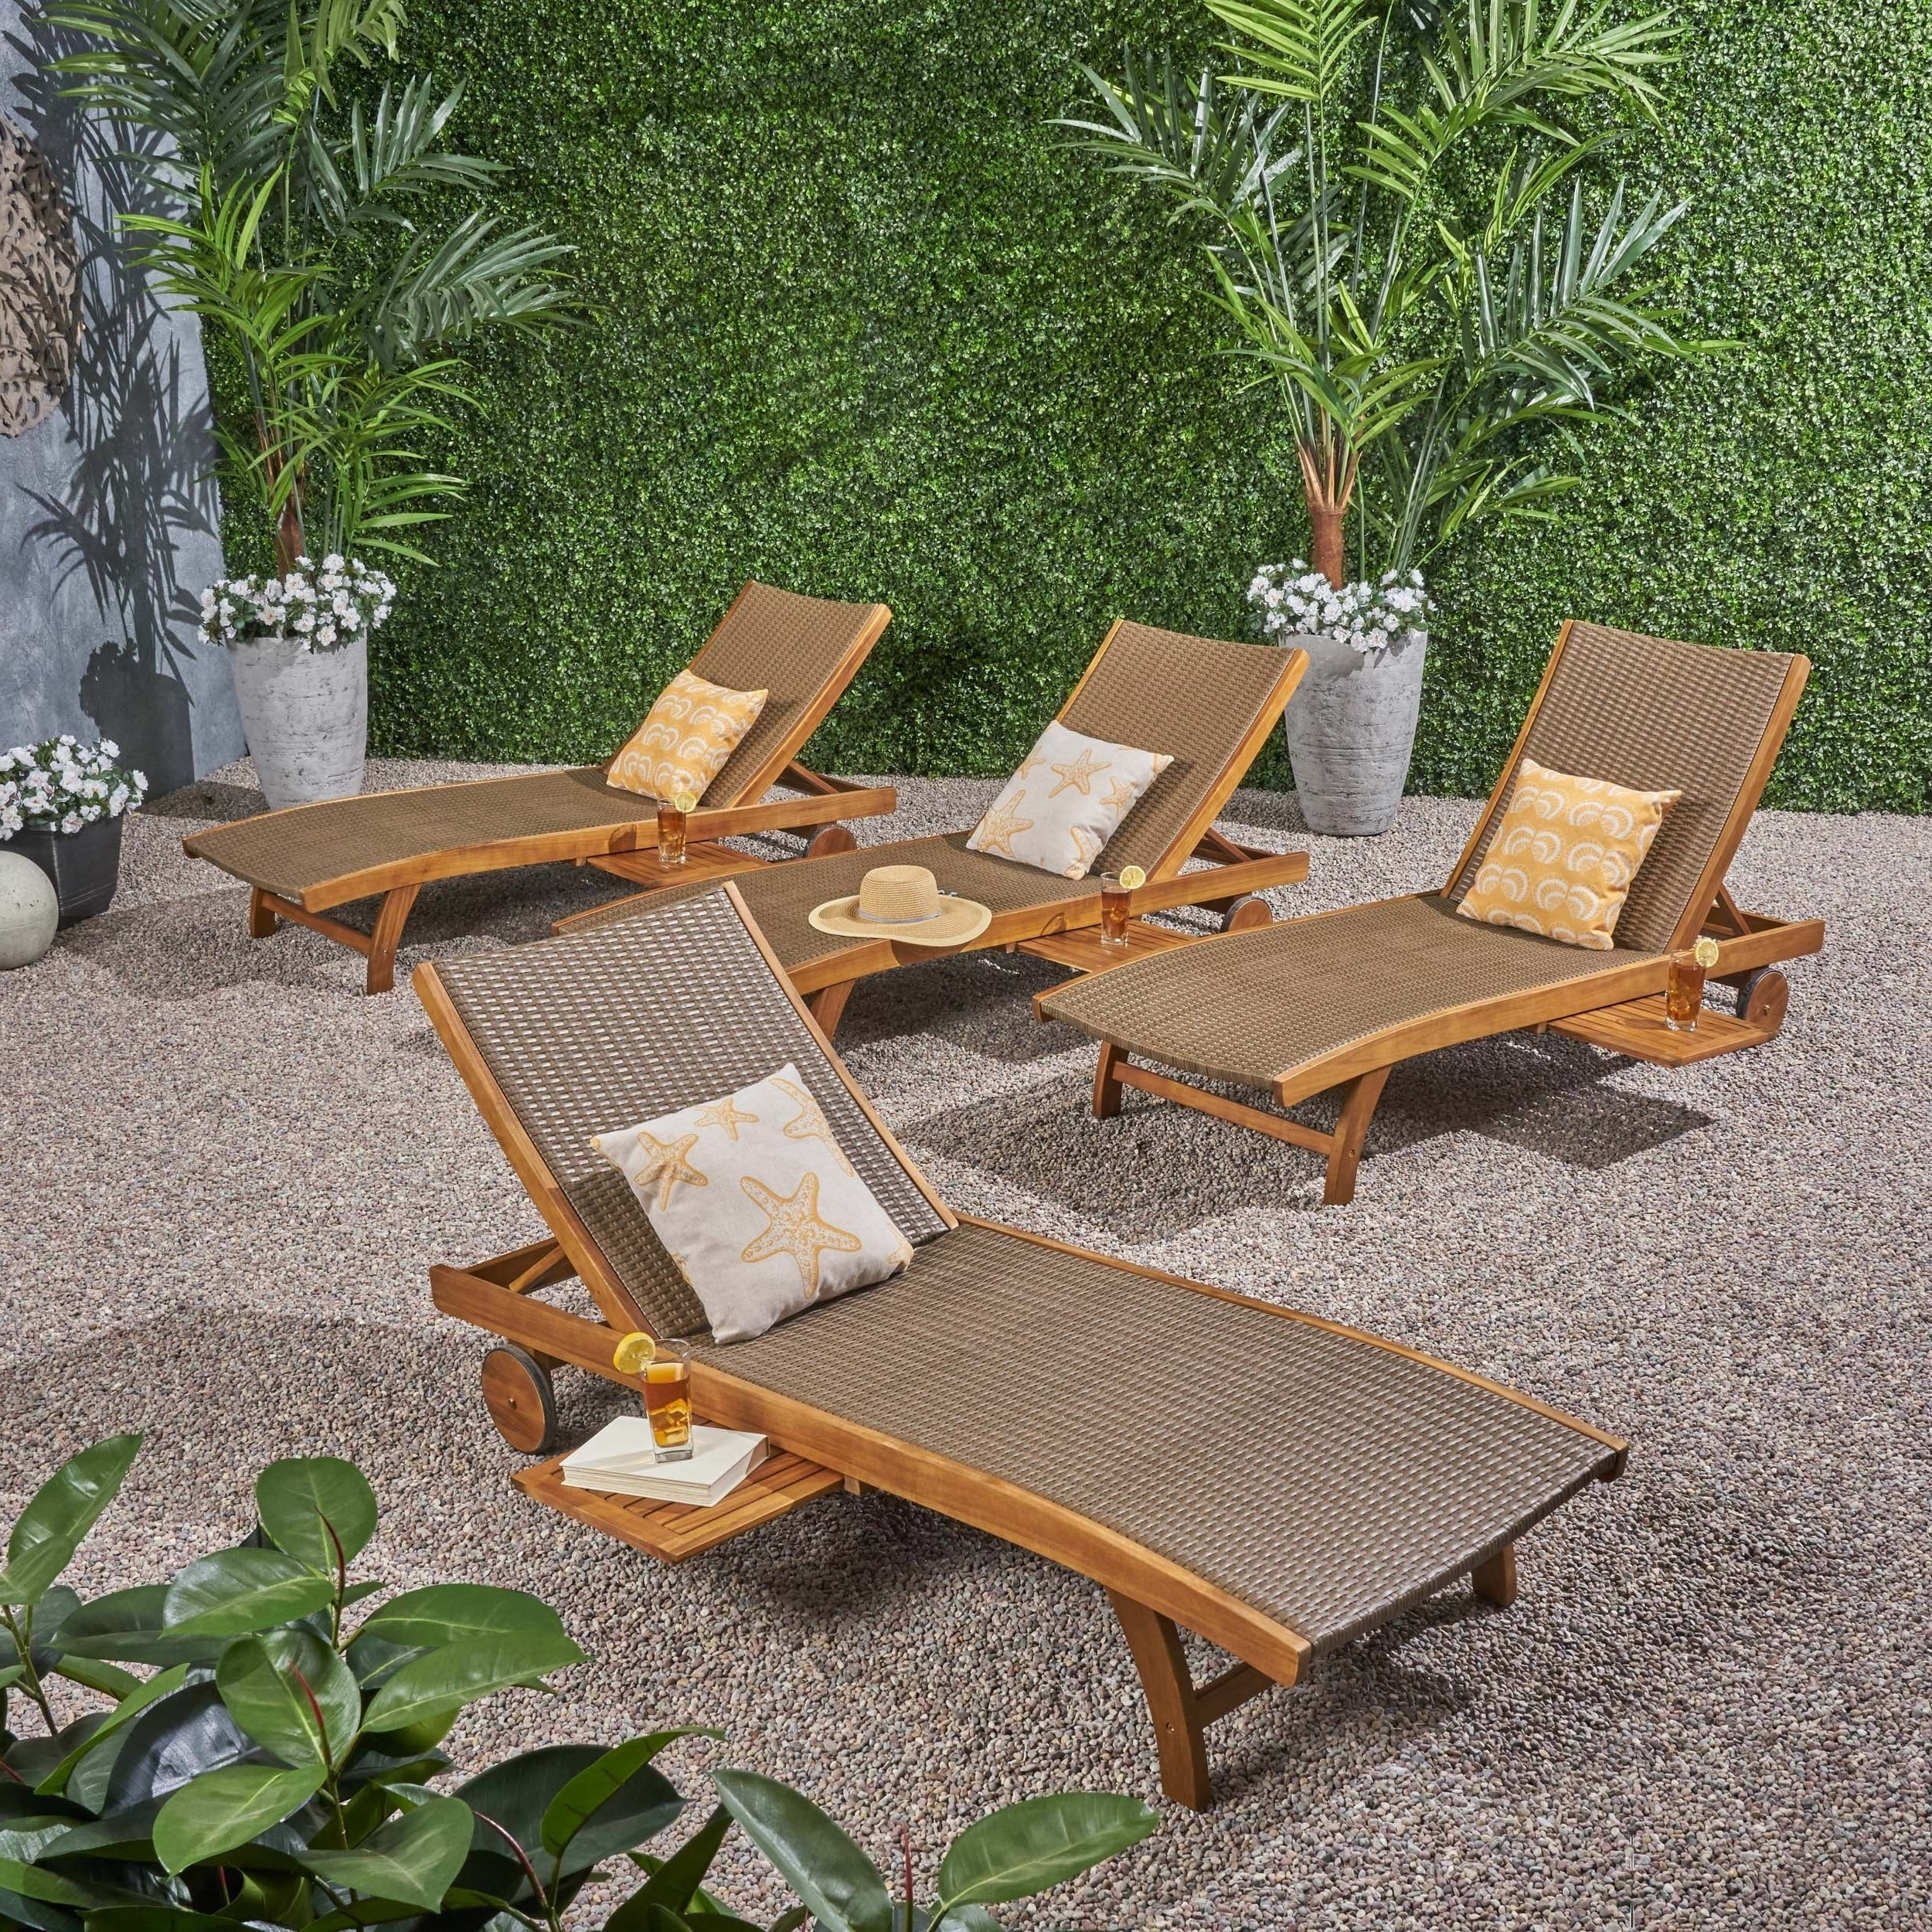 Outdoor Rustic Acacia Wood Chaise Lounges With Wicker Seat Throughout Most Current Banzai Outdoor Wicker And Wood Chaise Lounge With Pull Out Tray(Set Of 4)By Christopher Knight Home (View 7 of 25)